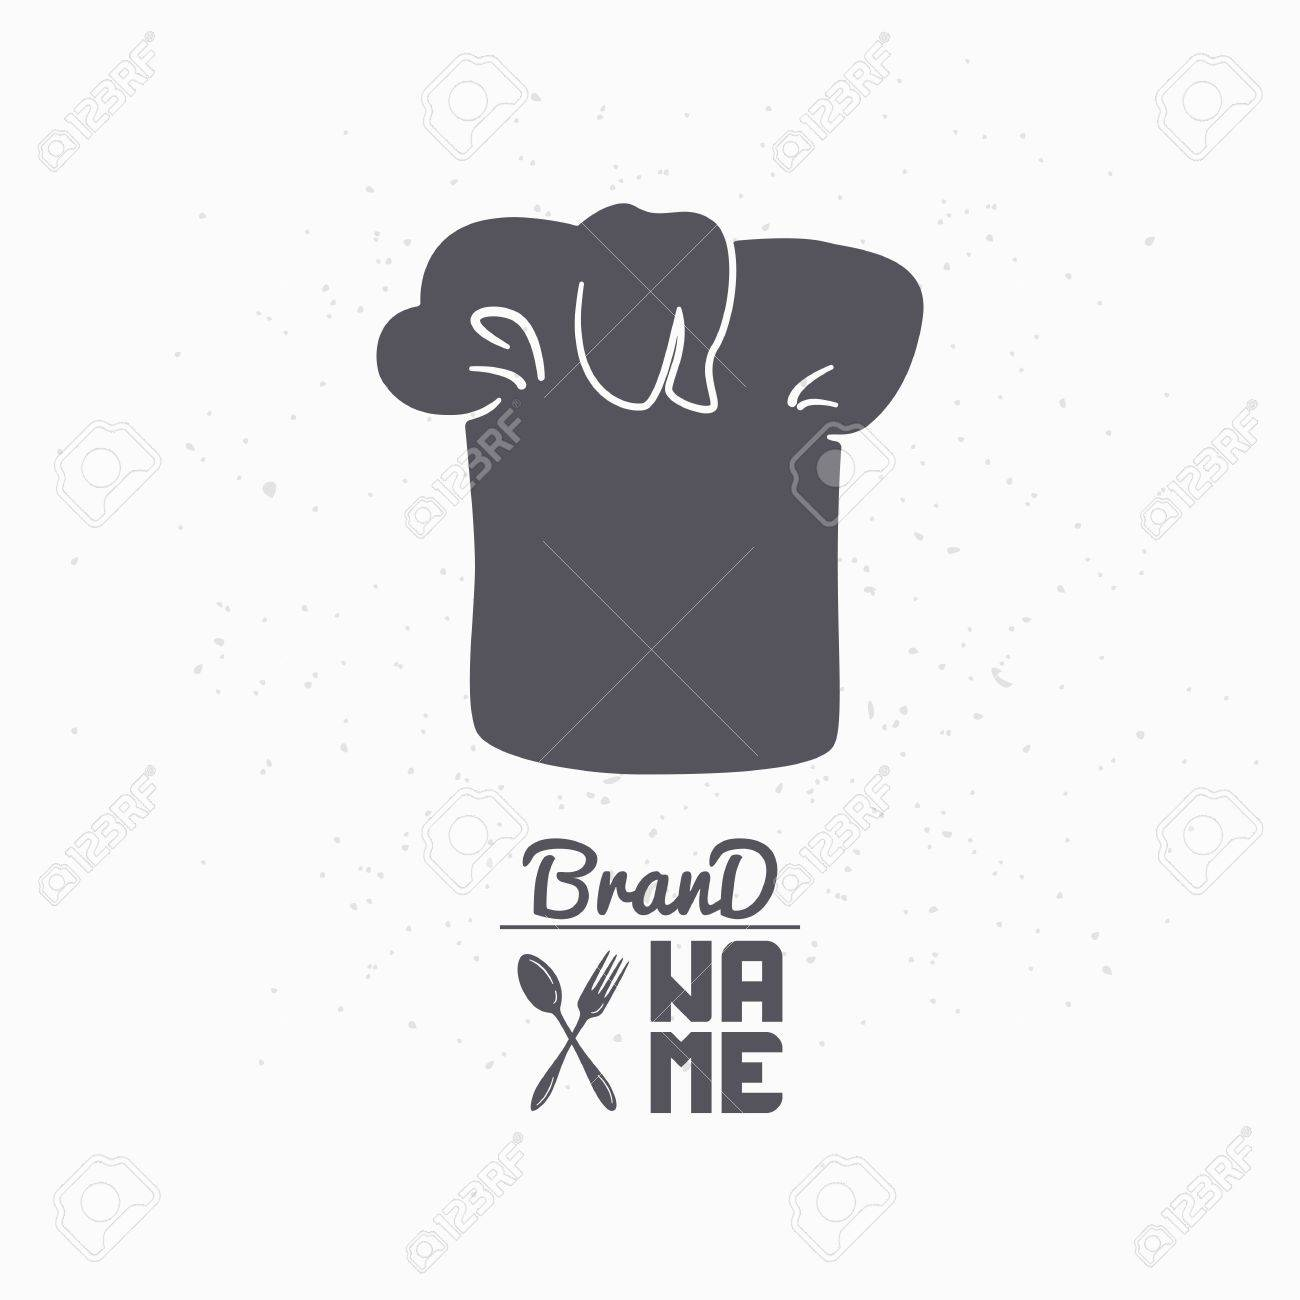 hand drawn silhouette of chef hat restaurant logo template for